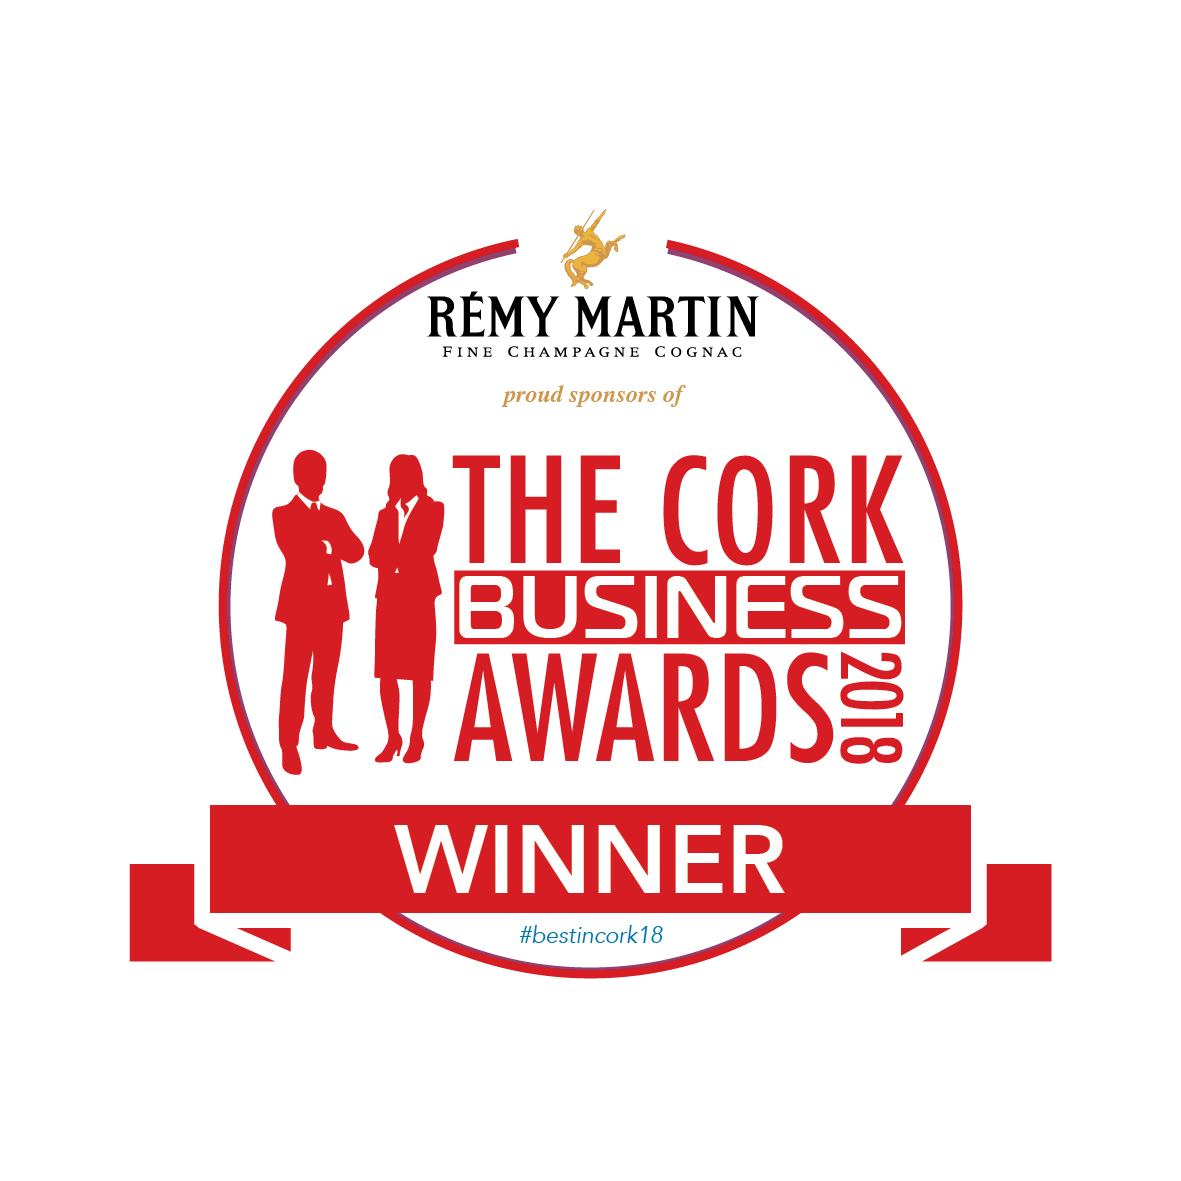 The Cork Business Awards Winners